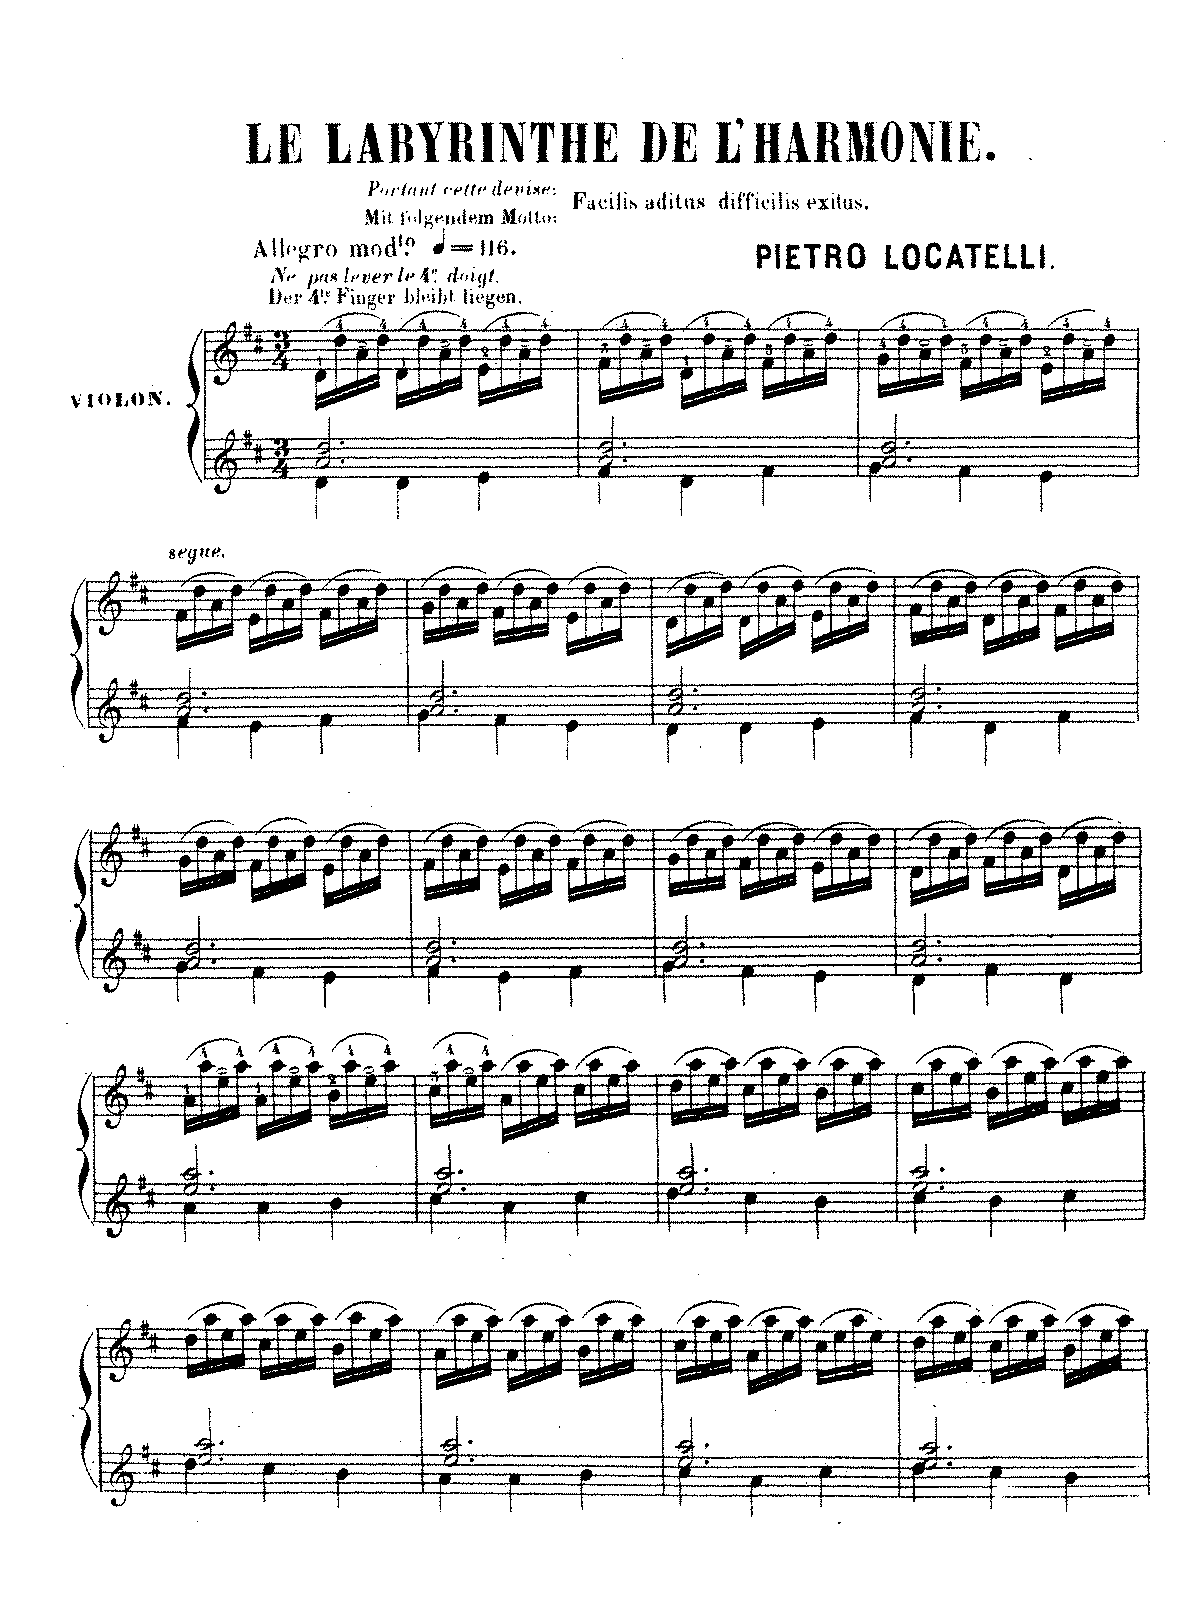 PMLP47728-Locatelli - Le labyrinthe de l'harmonie Op3 for violon solo.pdf